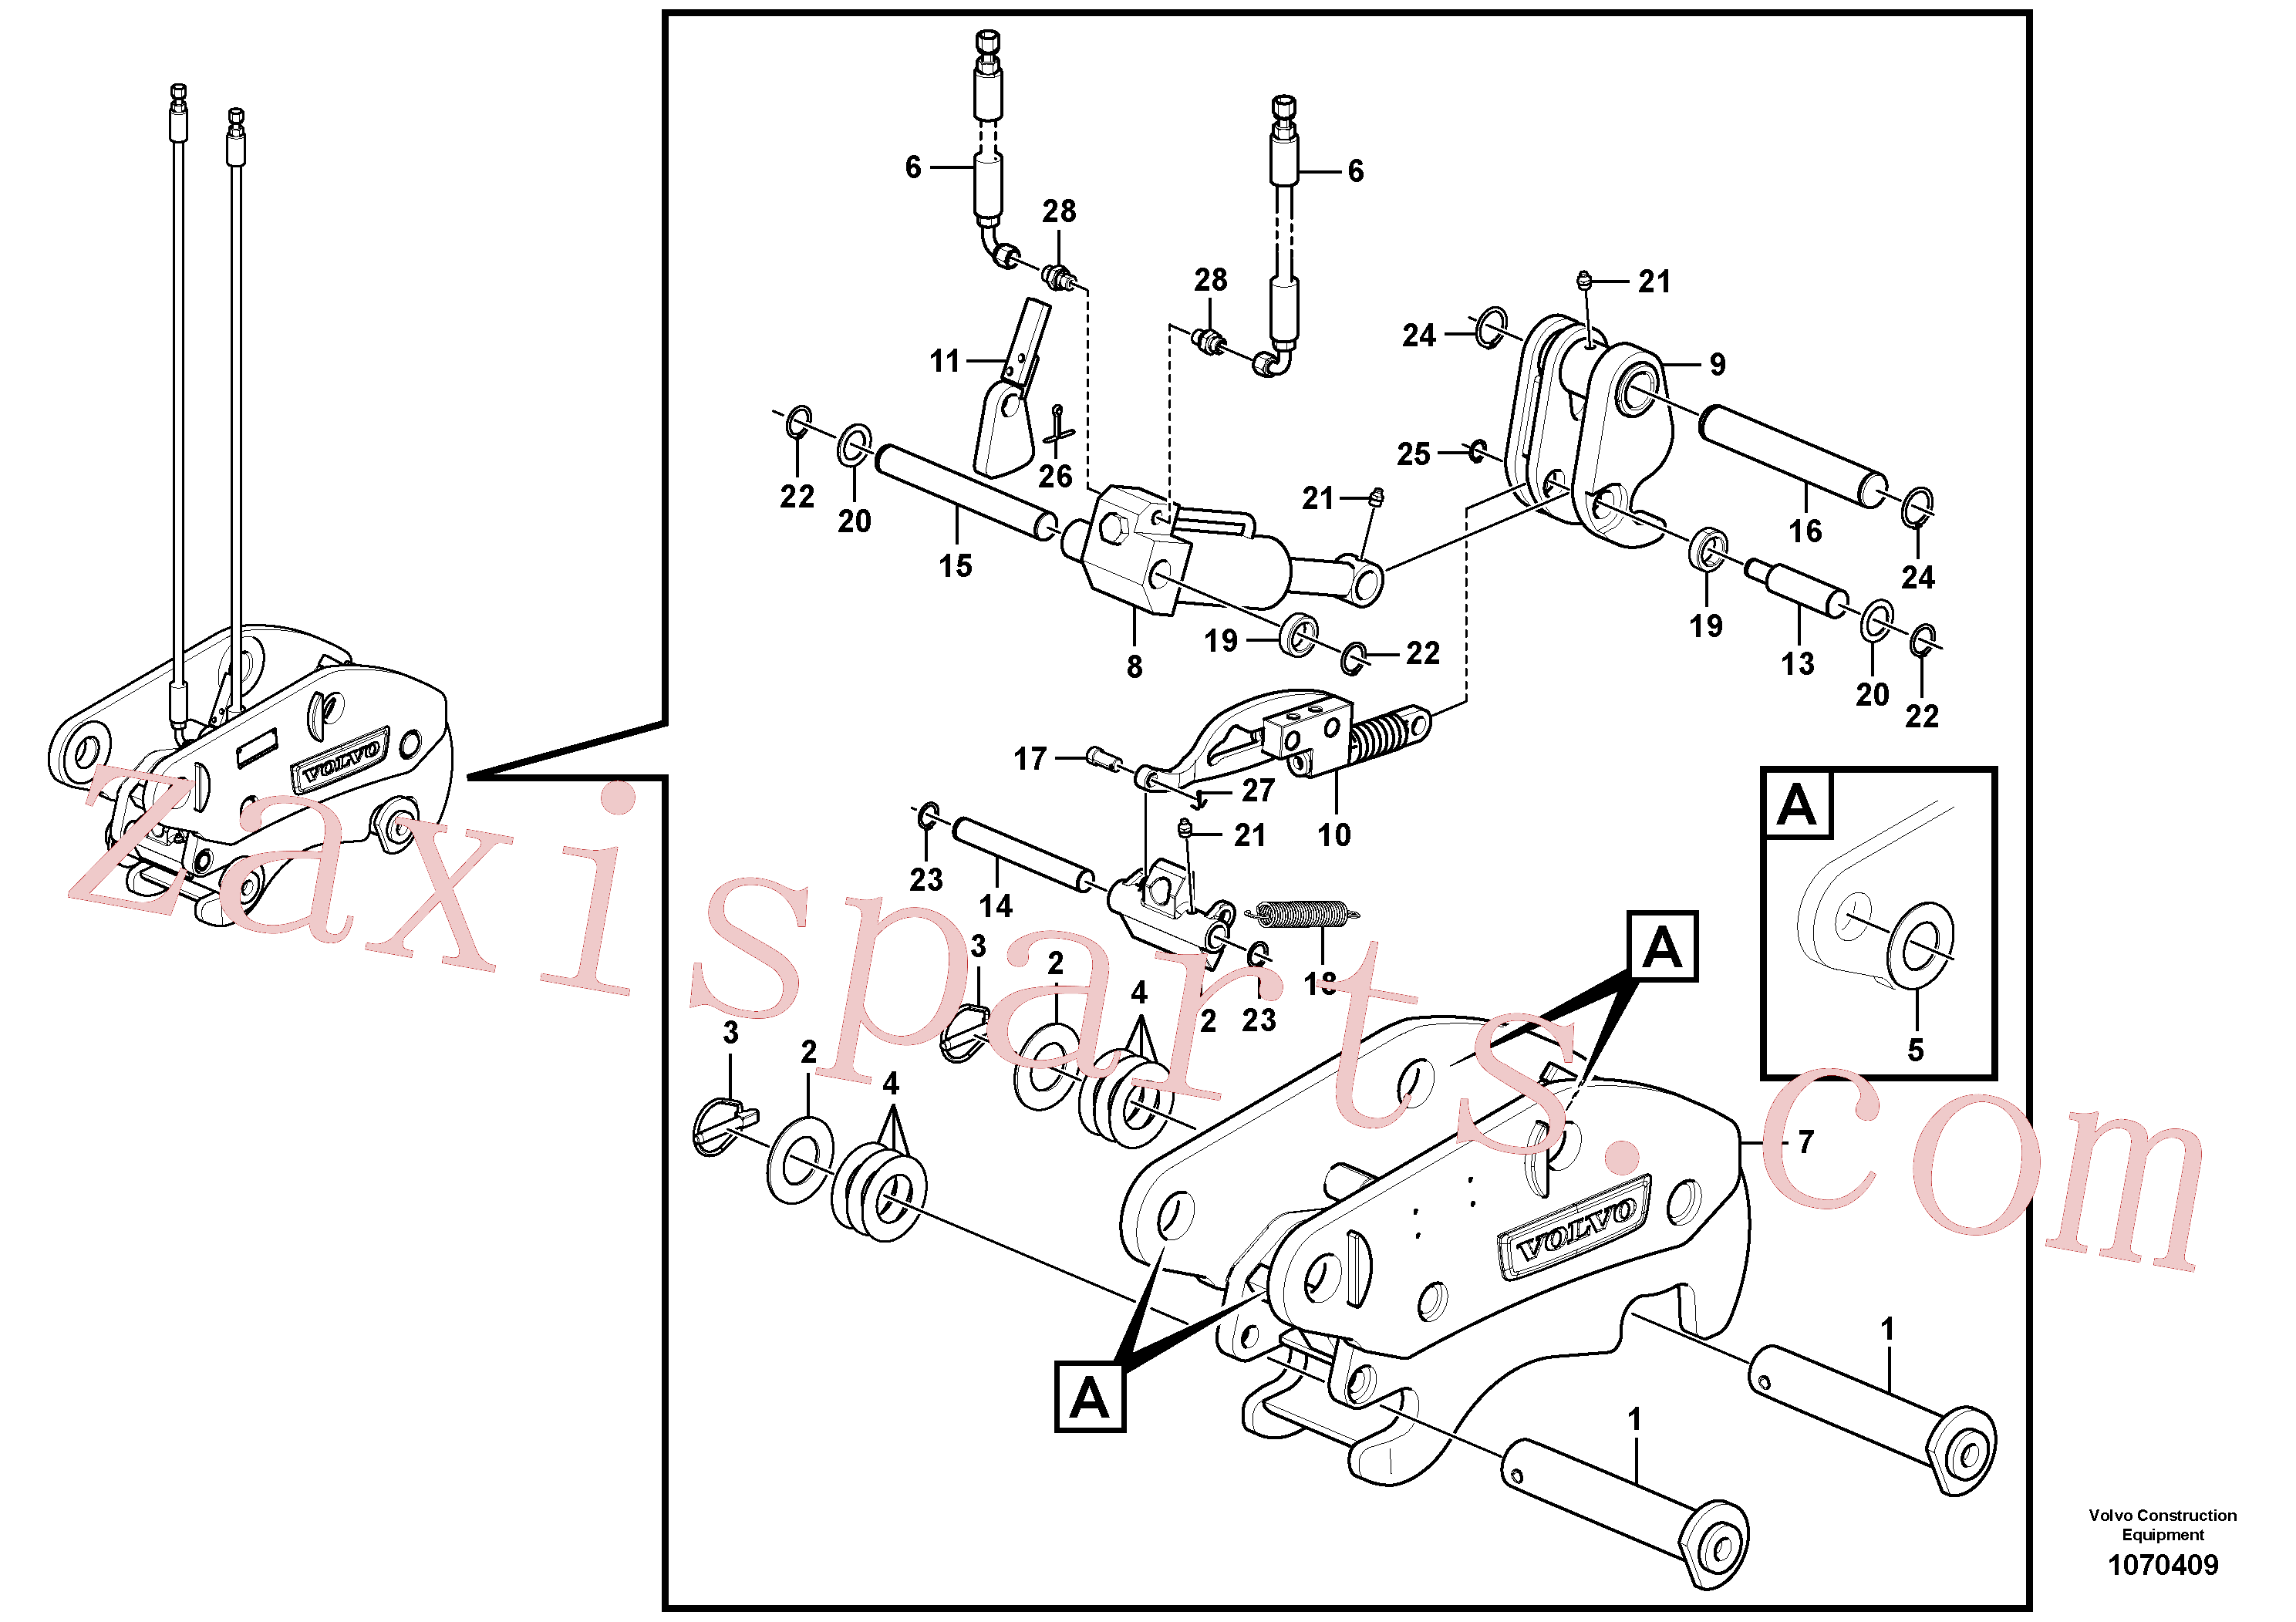 SA9541-01025 for Volvo Hydraulic attachment bracket(1070409 assembly)